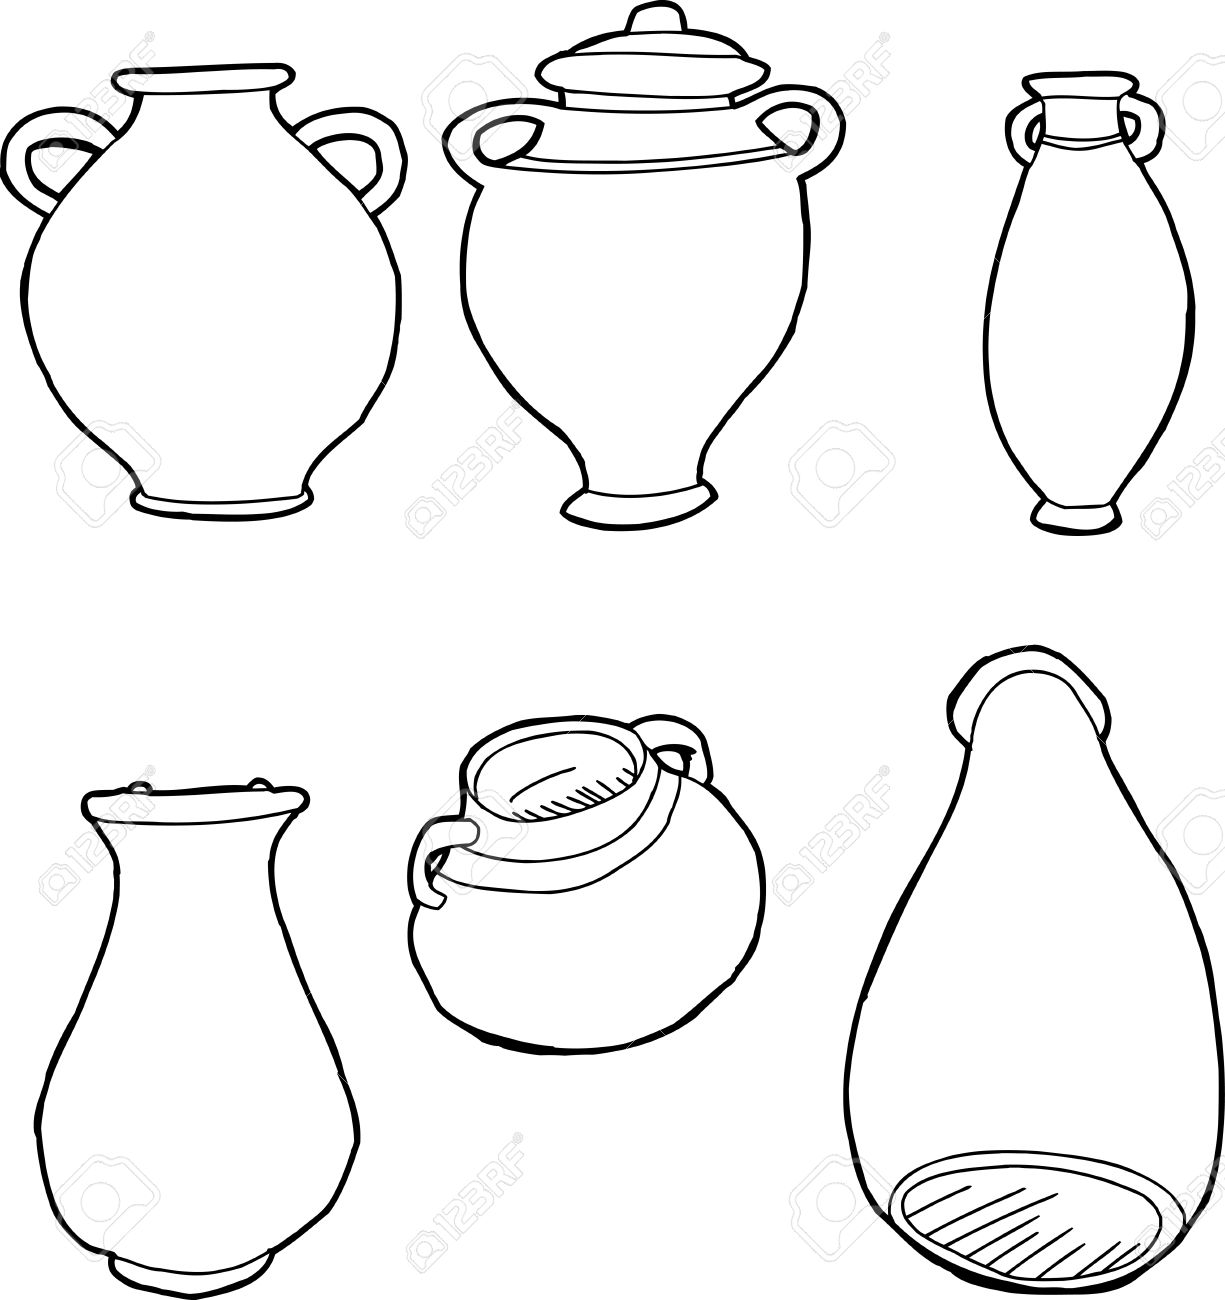 Outlined drawings of ancient greek amphora vases royalty free outlined drawings of ancient greek amphora vases stock vector 33176770 reviewsmspy